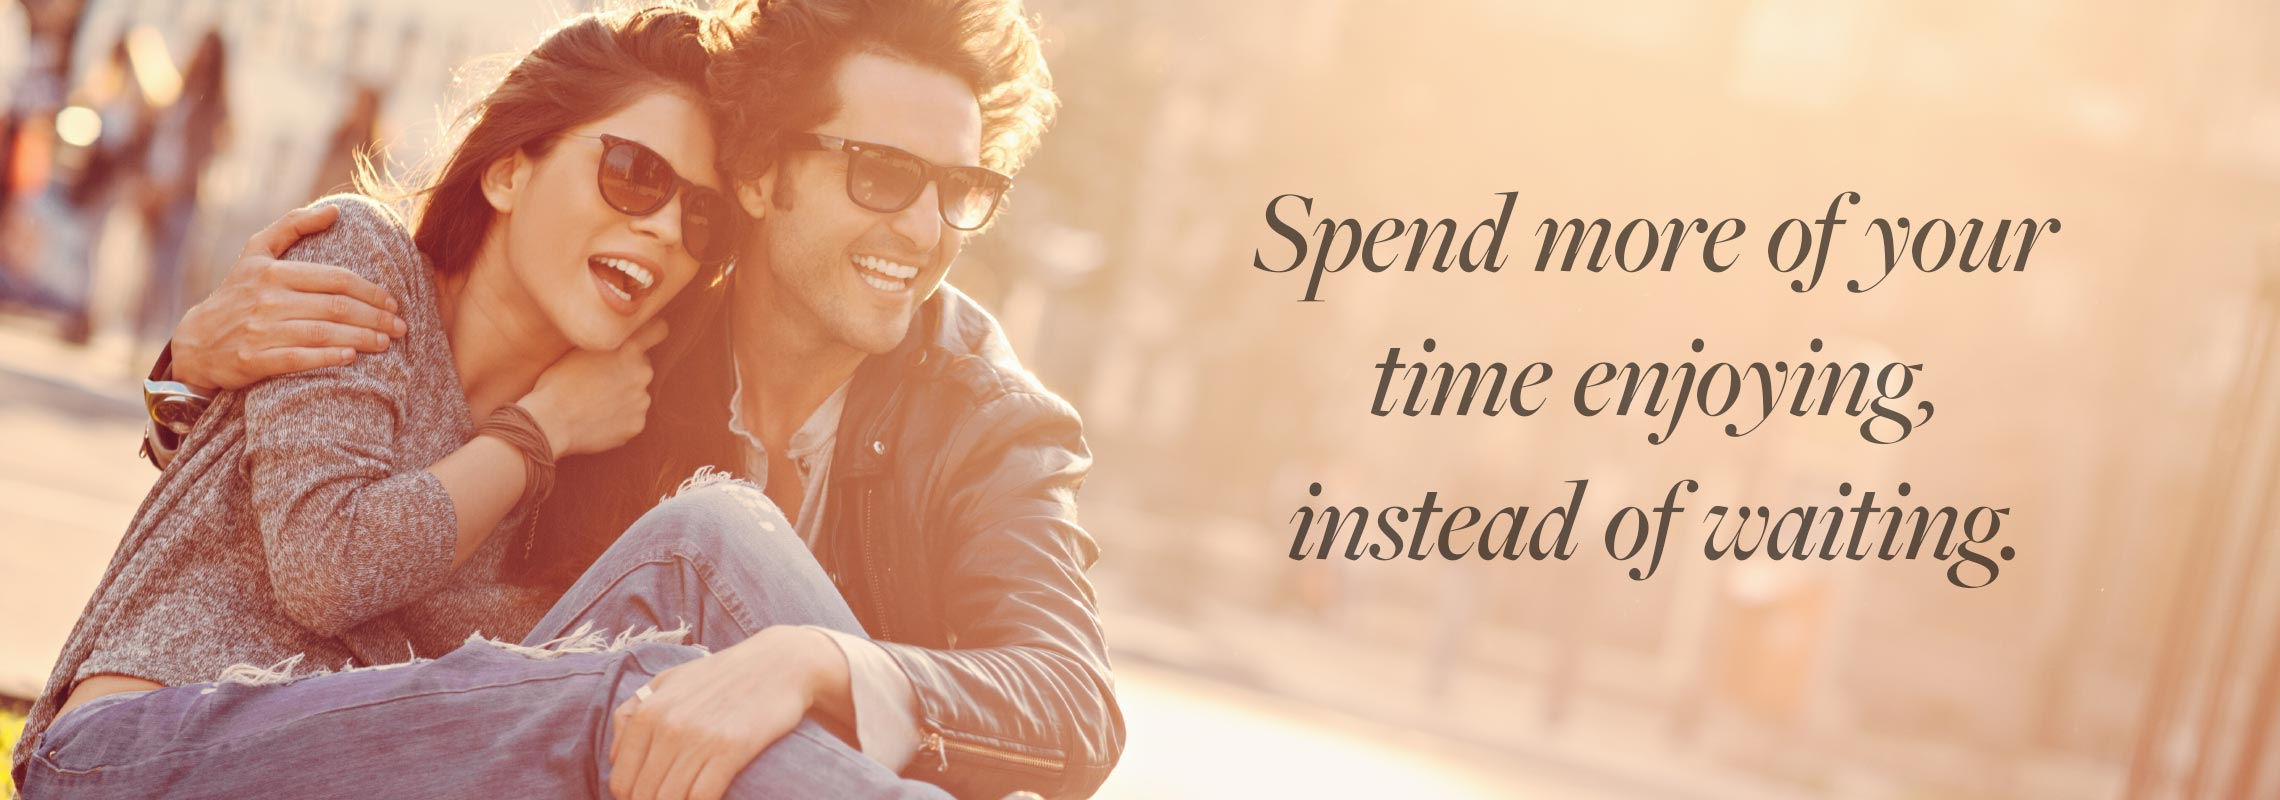 Happy, young couple enjoying the outdoors in the sun, wearing glasses that have photochromic lenses that get darker in the sunlight with the statement on the image; Spend more of your time enjoying, instead of waiting.